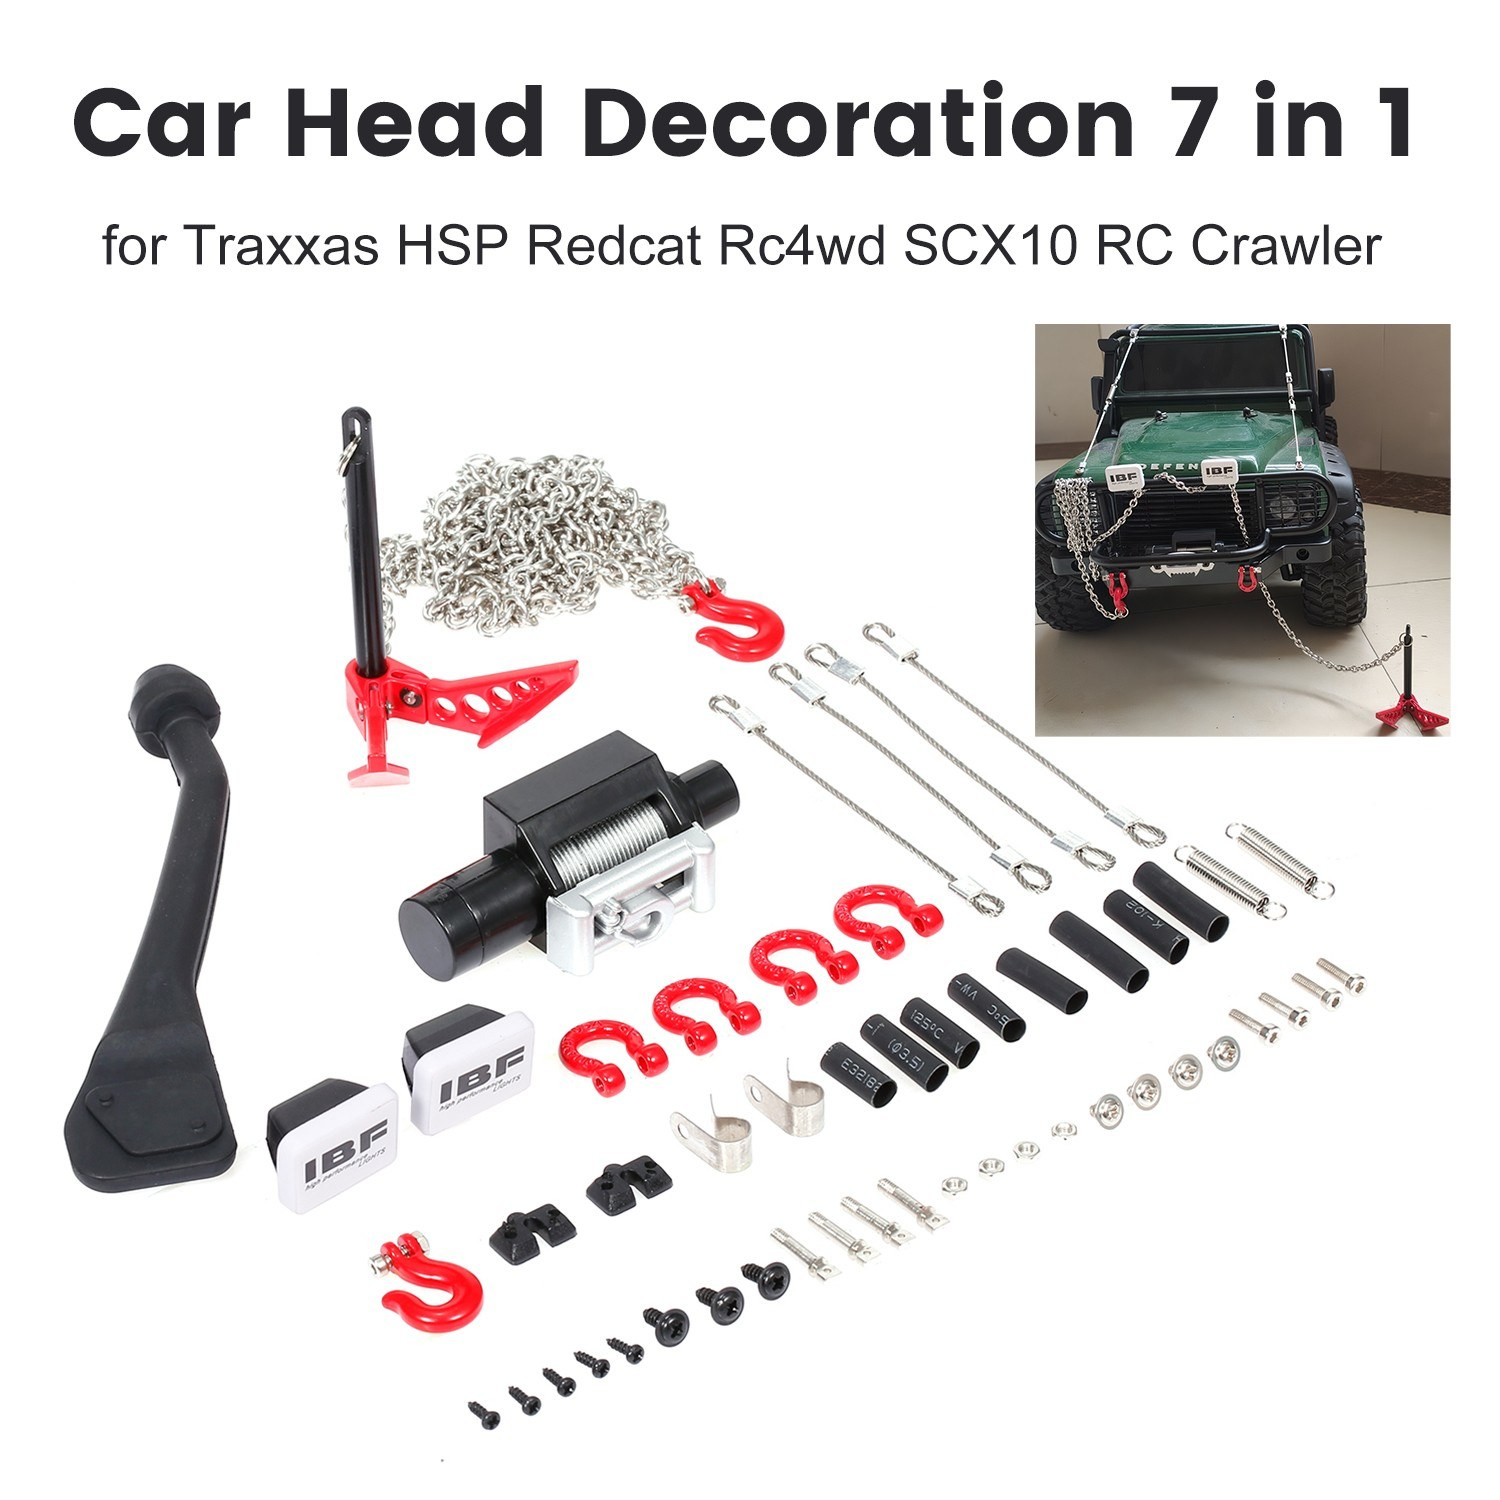 Car Head Decoration 7 in 1 Exhaust Pipe Shell Steel Chain D-Ring Shackles Plastic Winch Lampshade Earth Anchor for Traxxas HSP Redcat Rc4wd Tamiya SCX10 RC Crawler